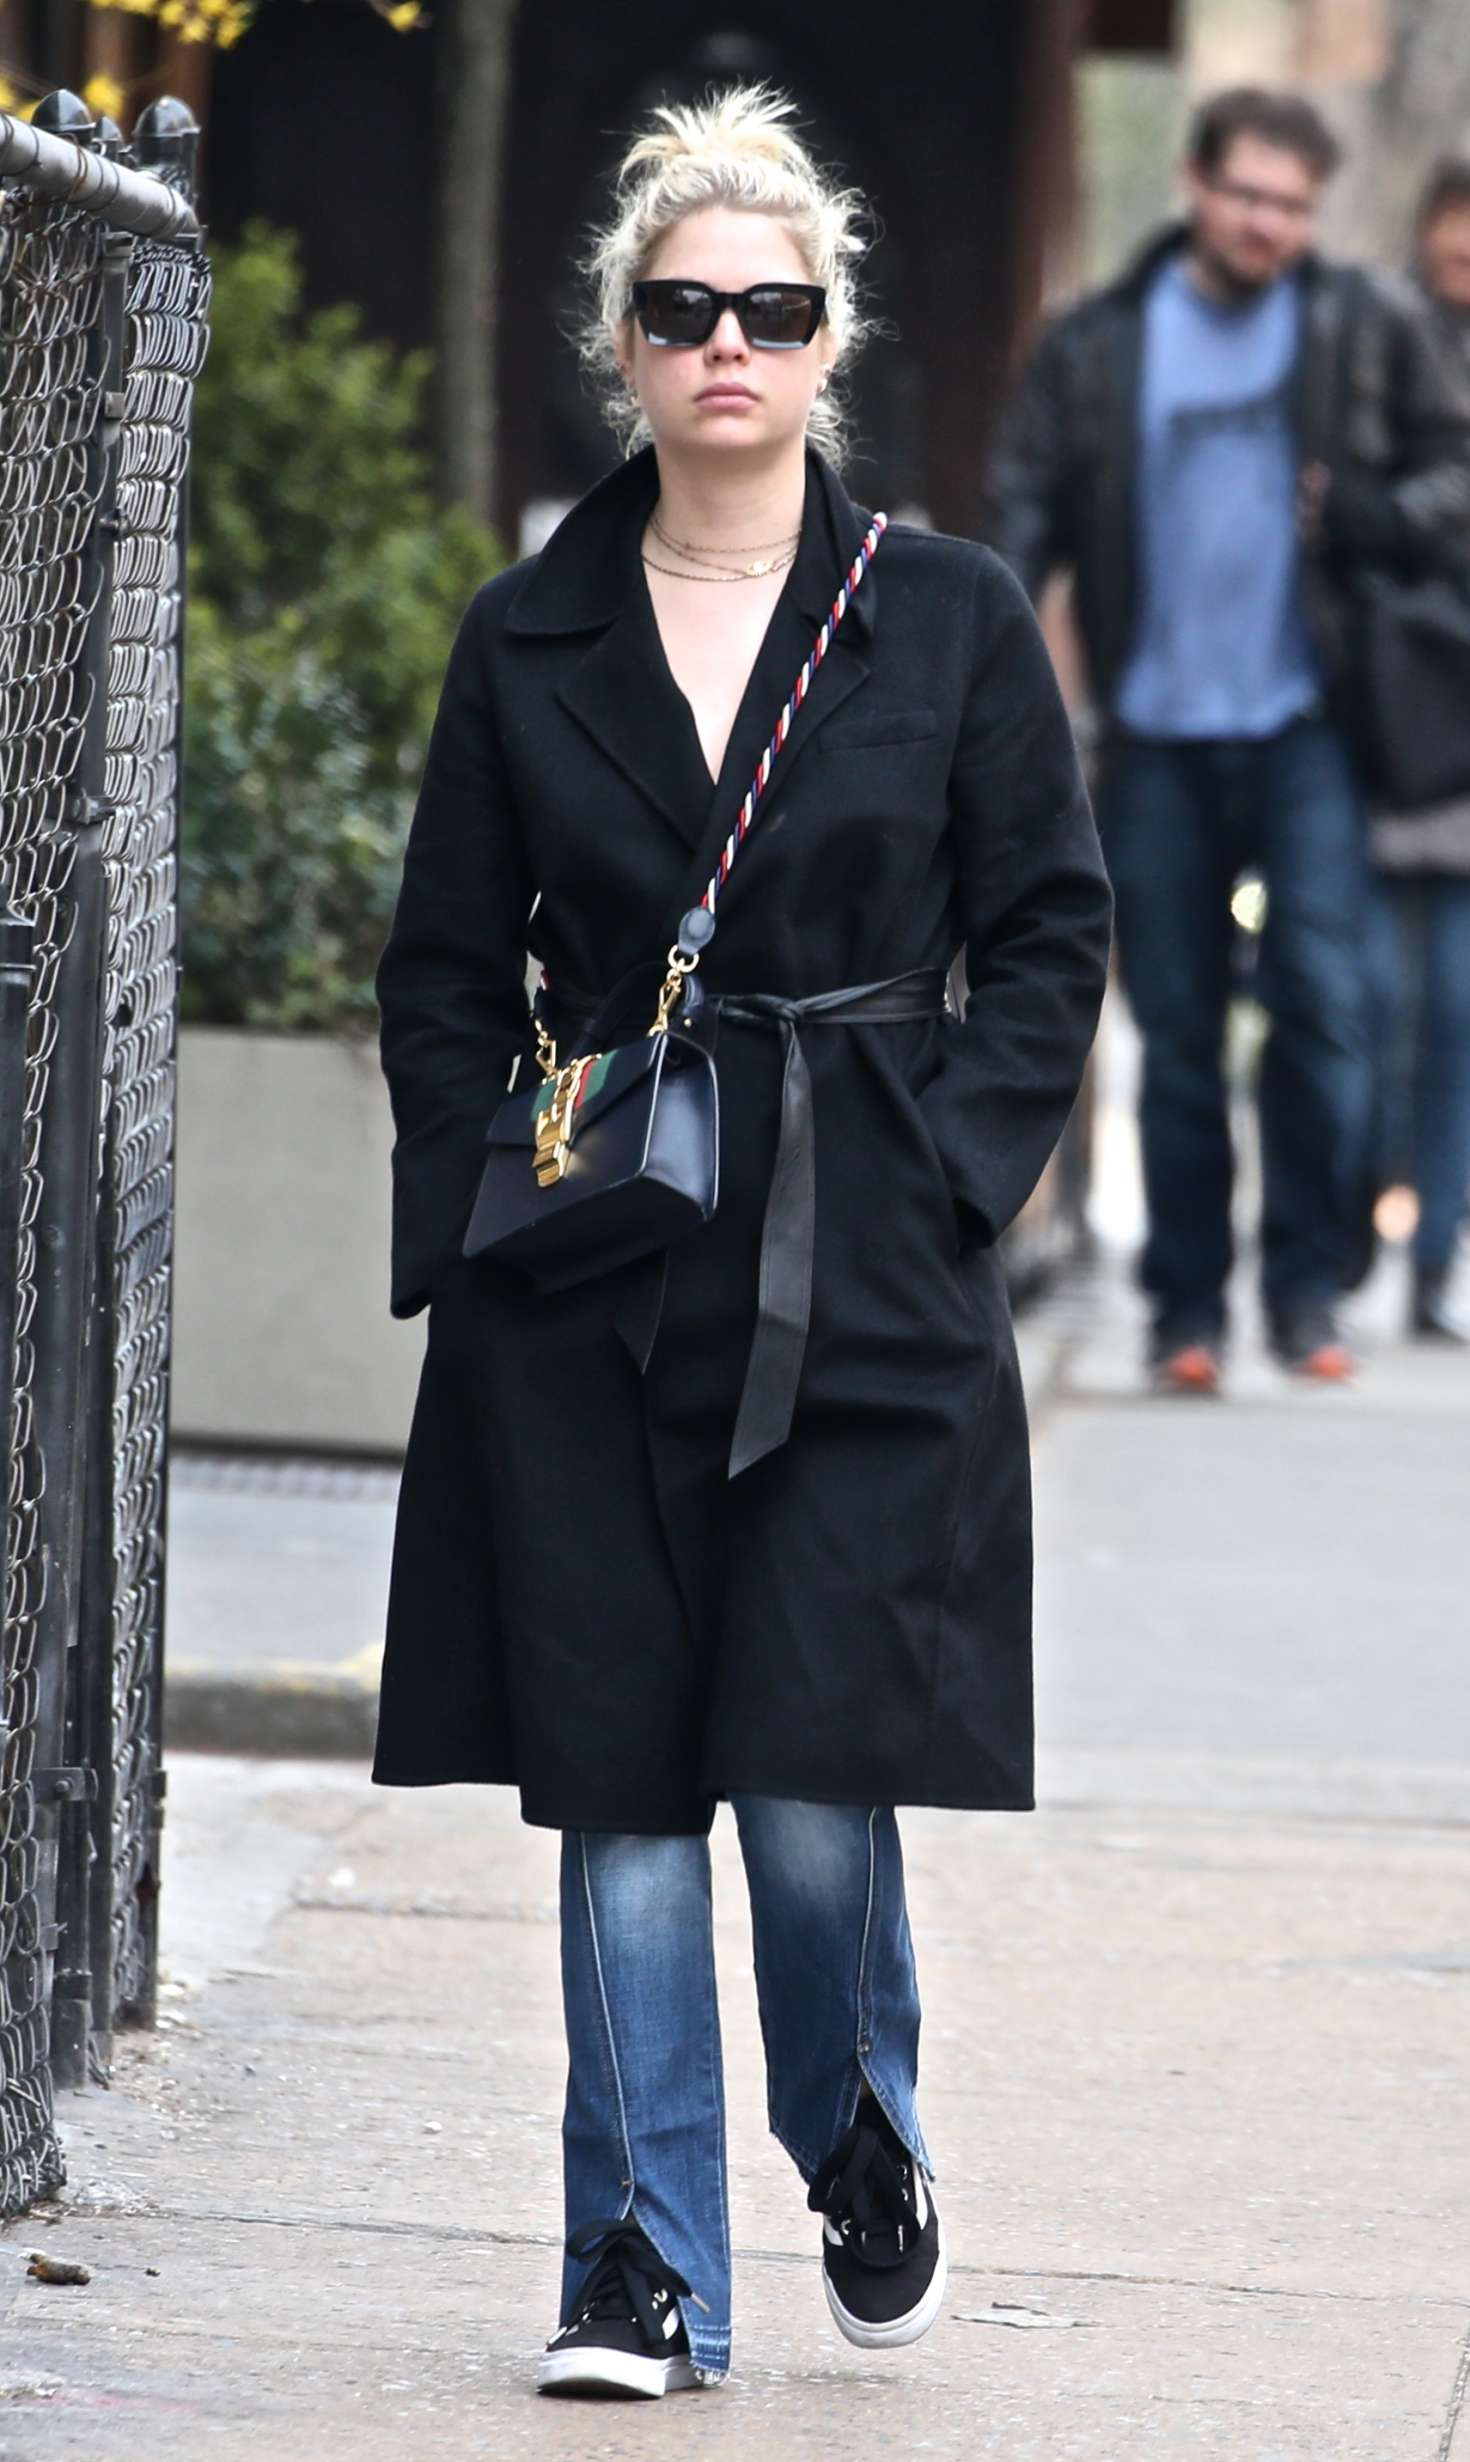 Ashley Benson 2015 : Ashley Benson: Out and about in NYC -05